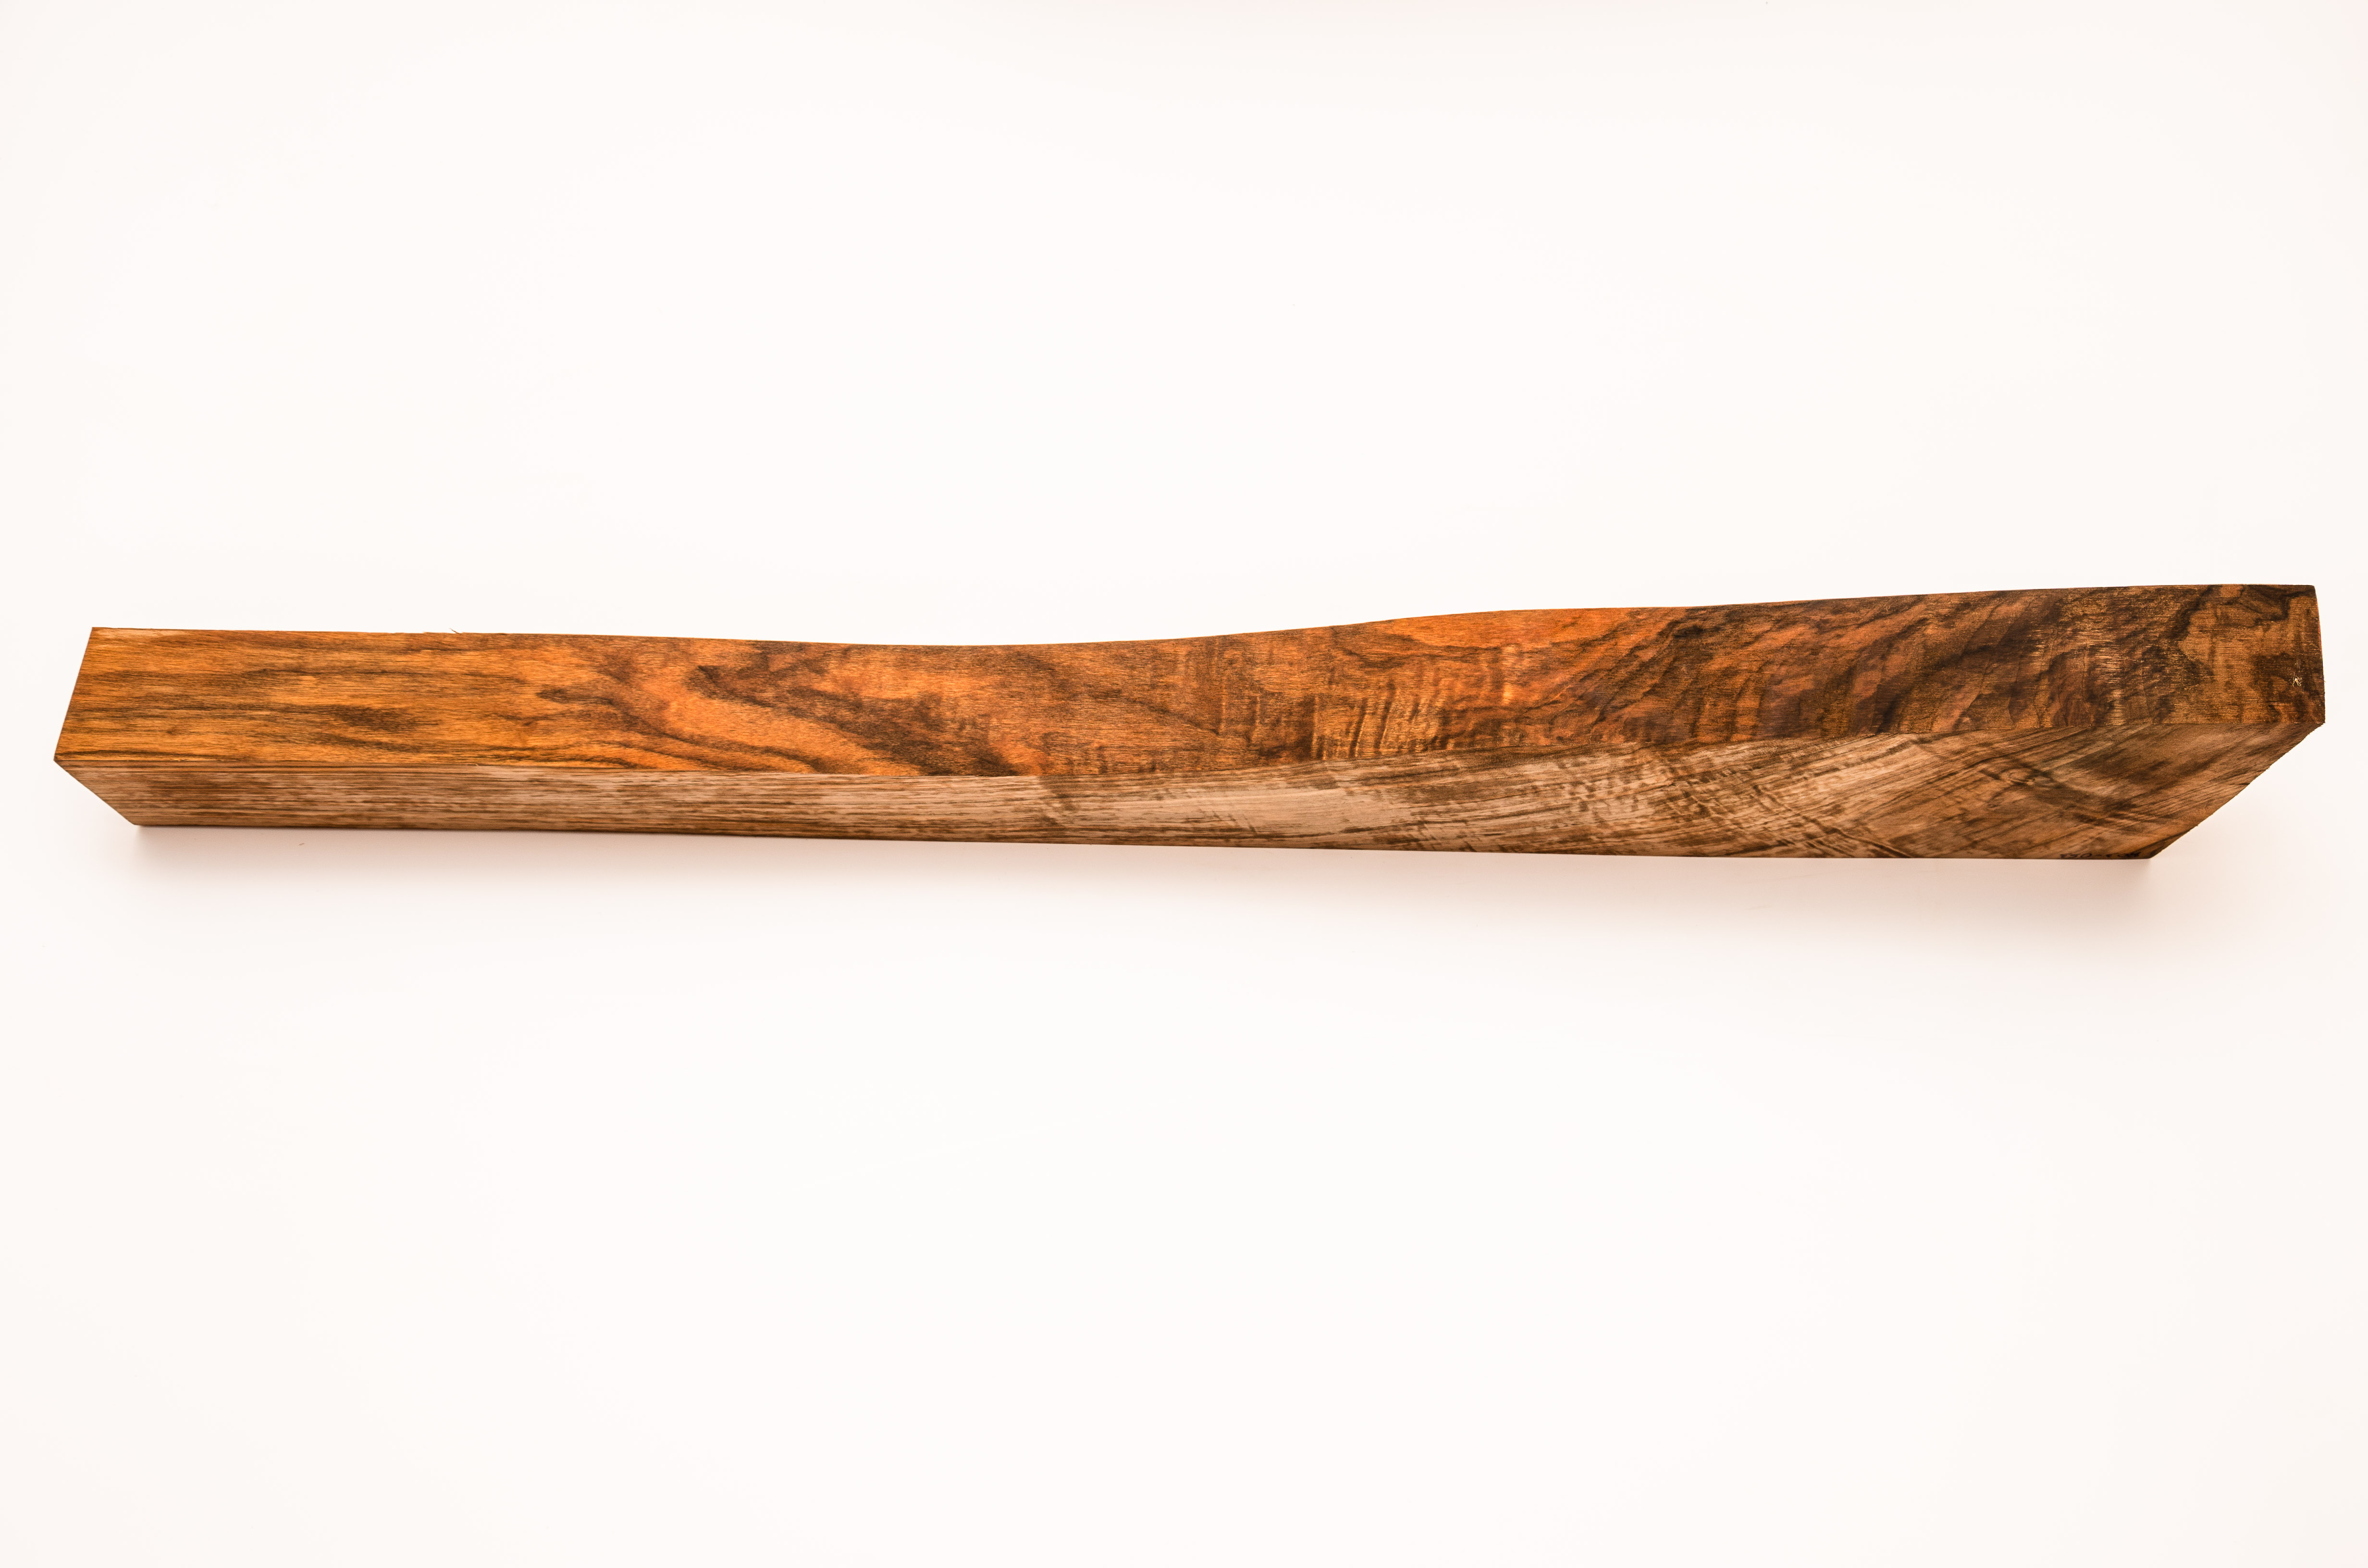 walnut_stock_blanks_for_guns_and_rifles-1442